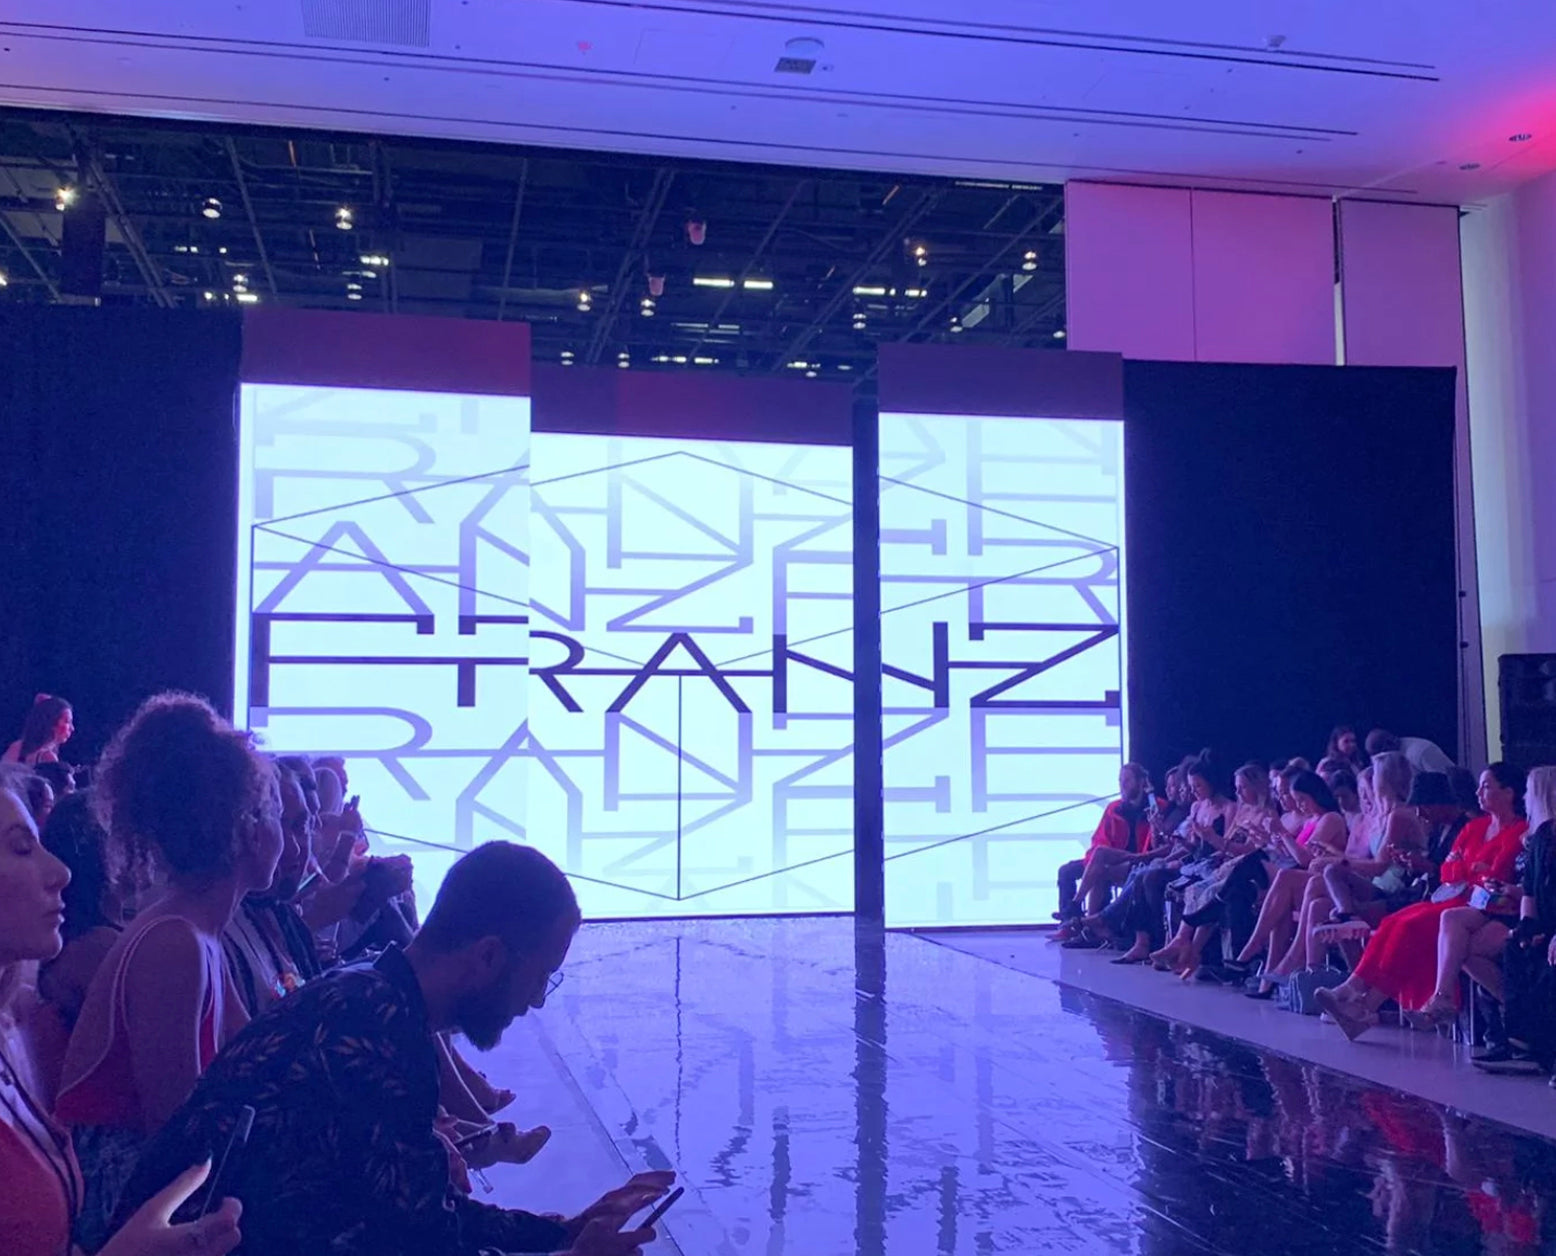 FRANZ at Miami Swim Week 2019!